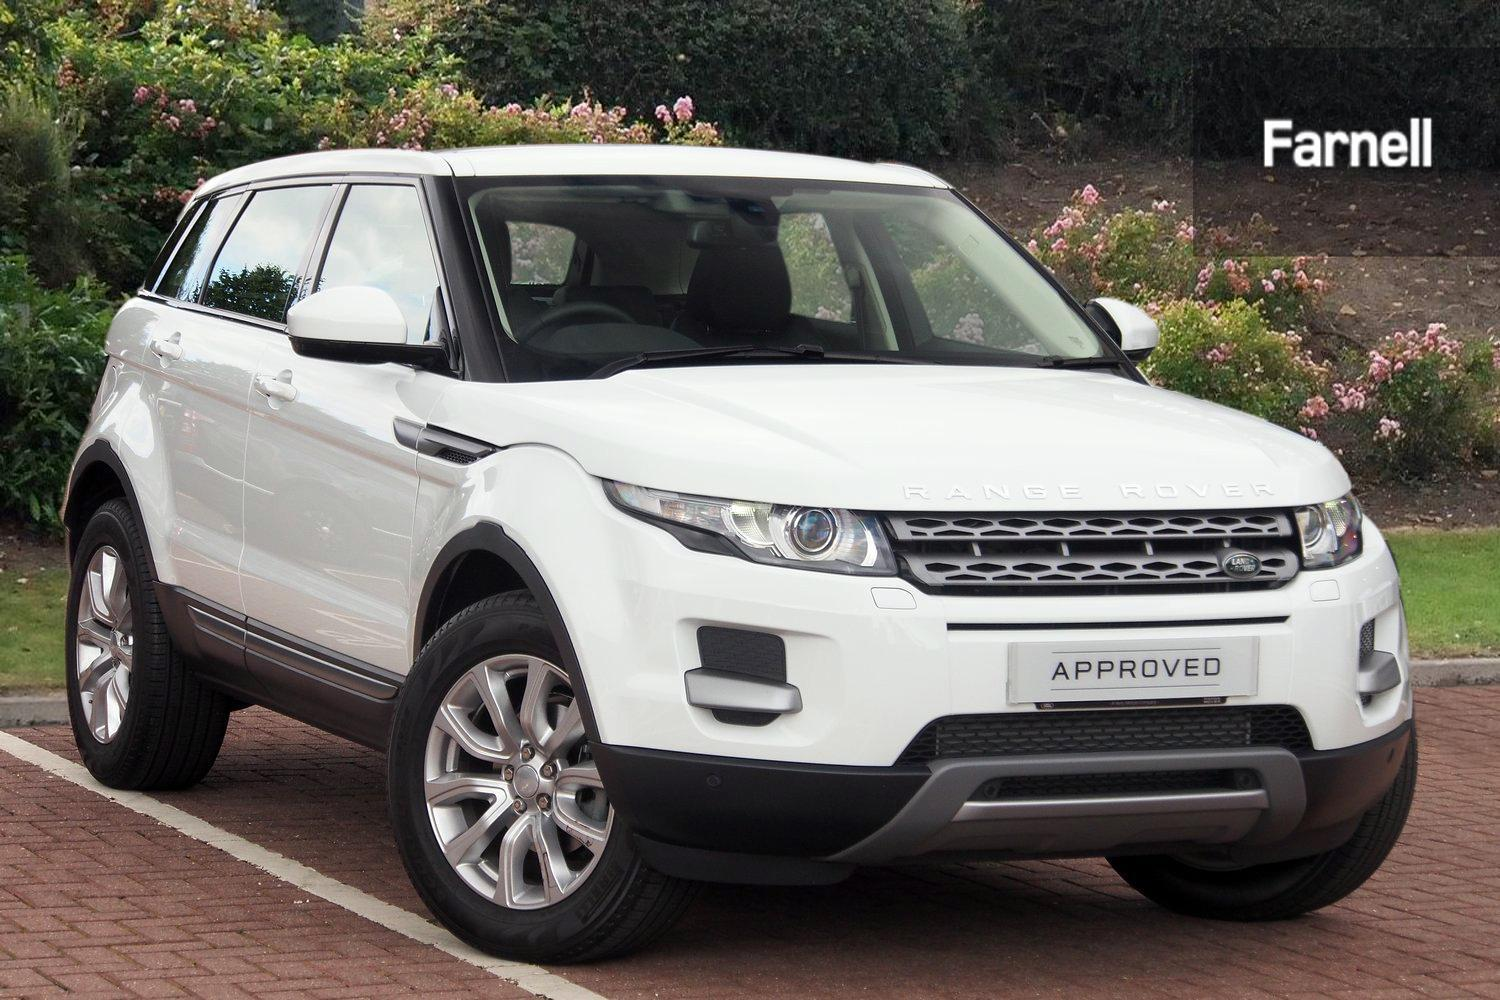 used land rover range rover evoque 2 2 sd4 pure 5dr tech pack diesel hatchback for sale. Black Bedroom Furniture Sets. Home Design Ideas